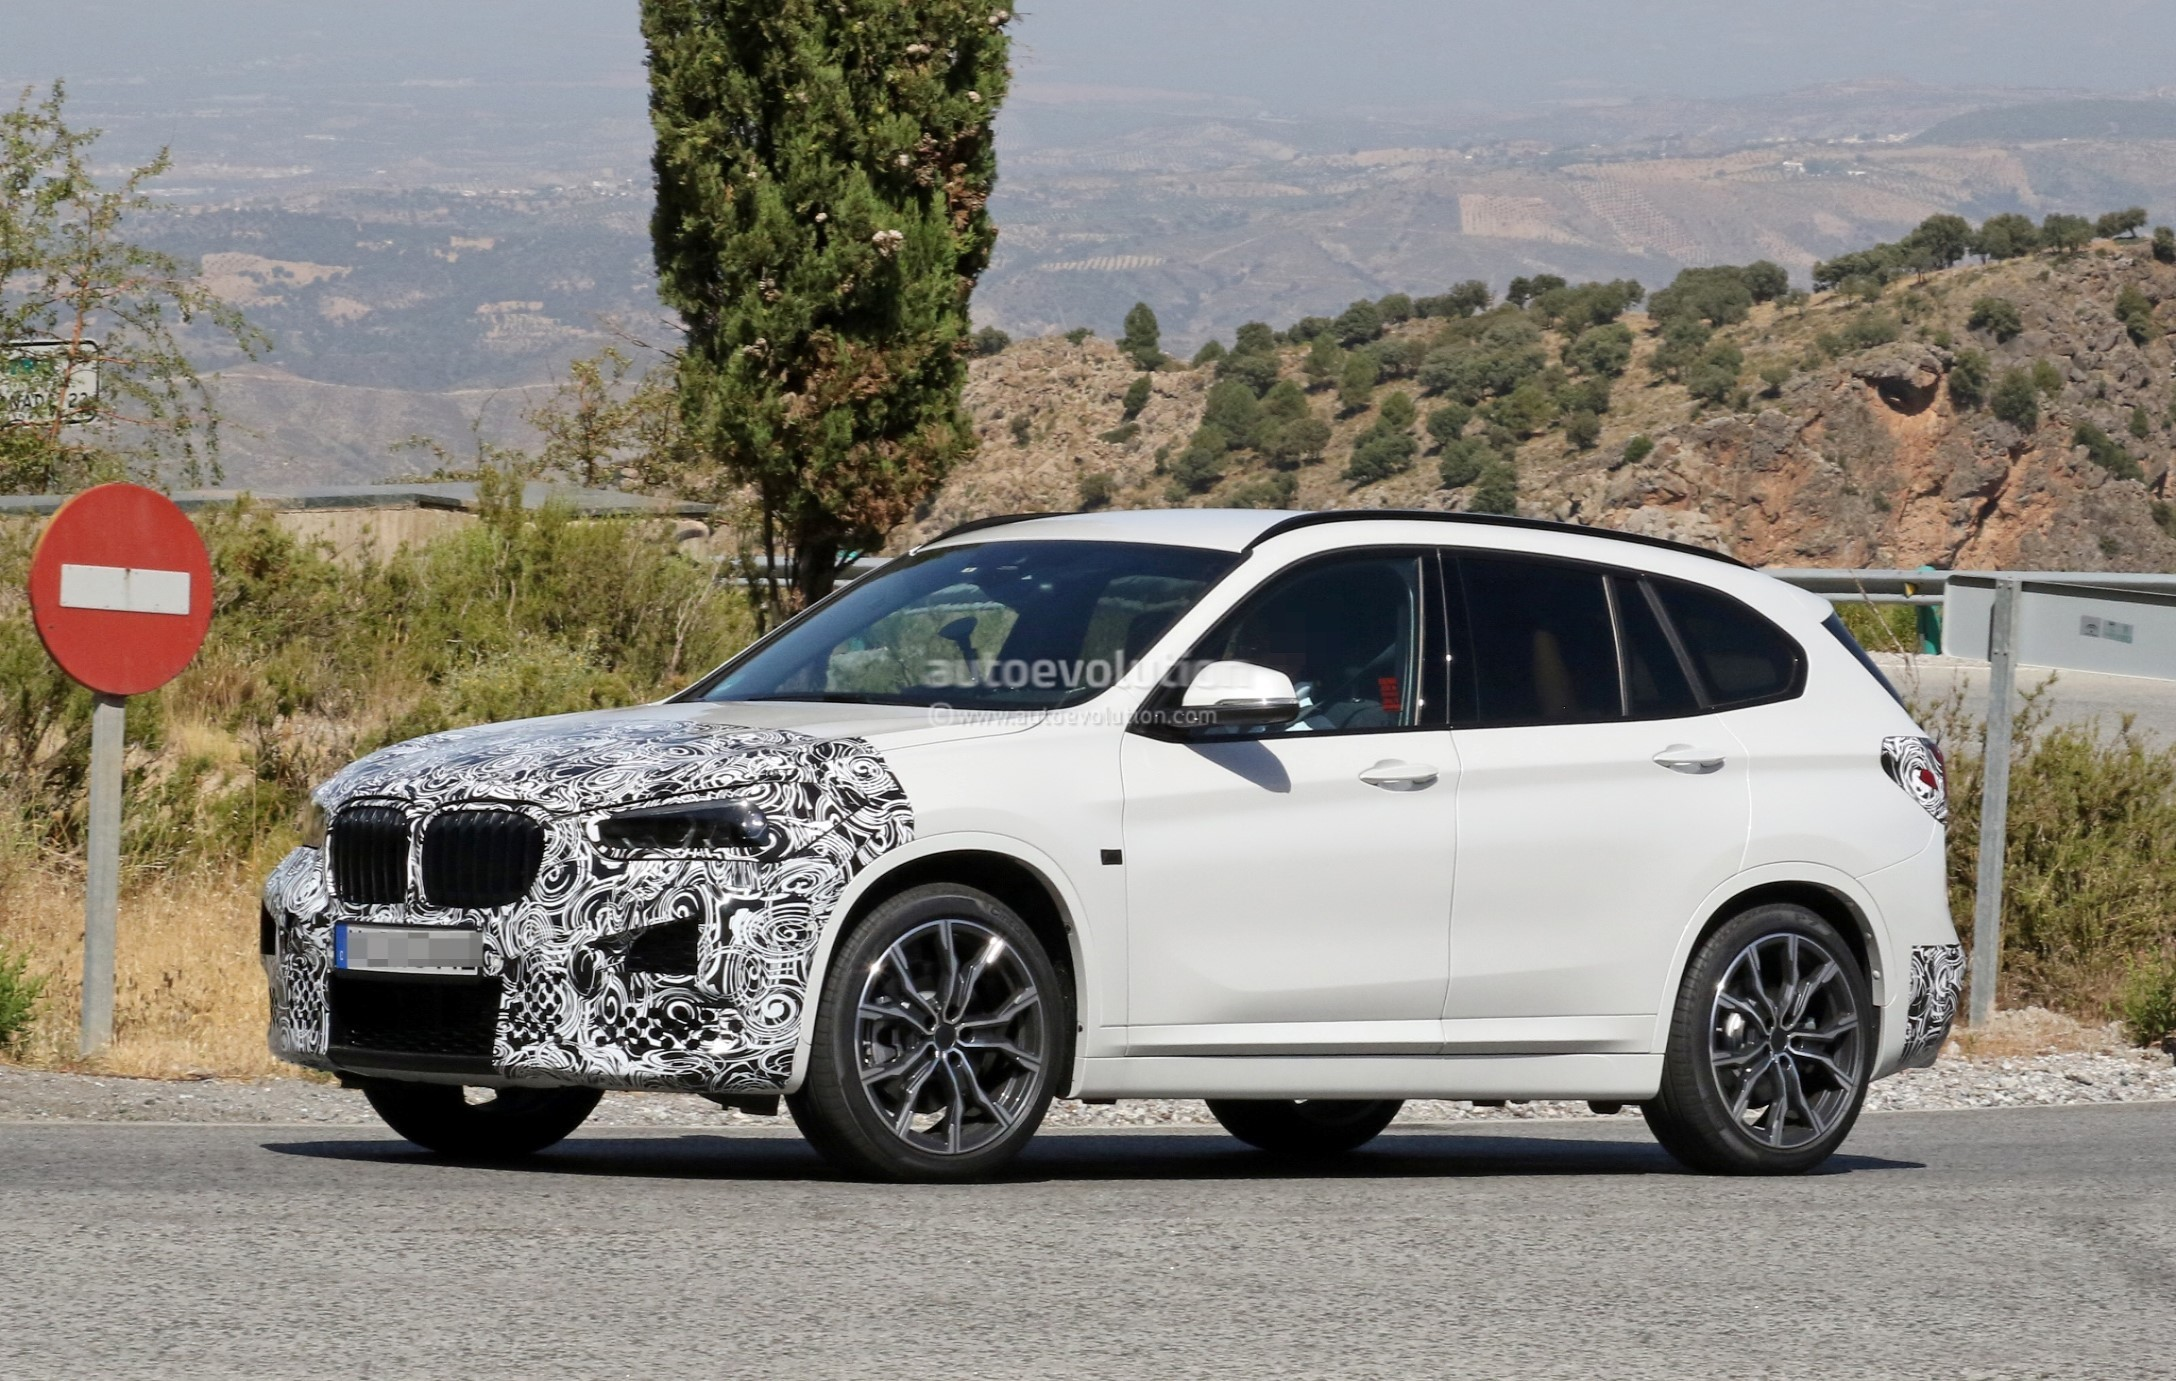 2019 Bmw X1 Lci Spied Hot Weather Testing In Europe